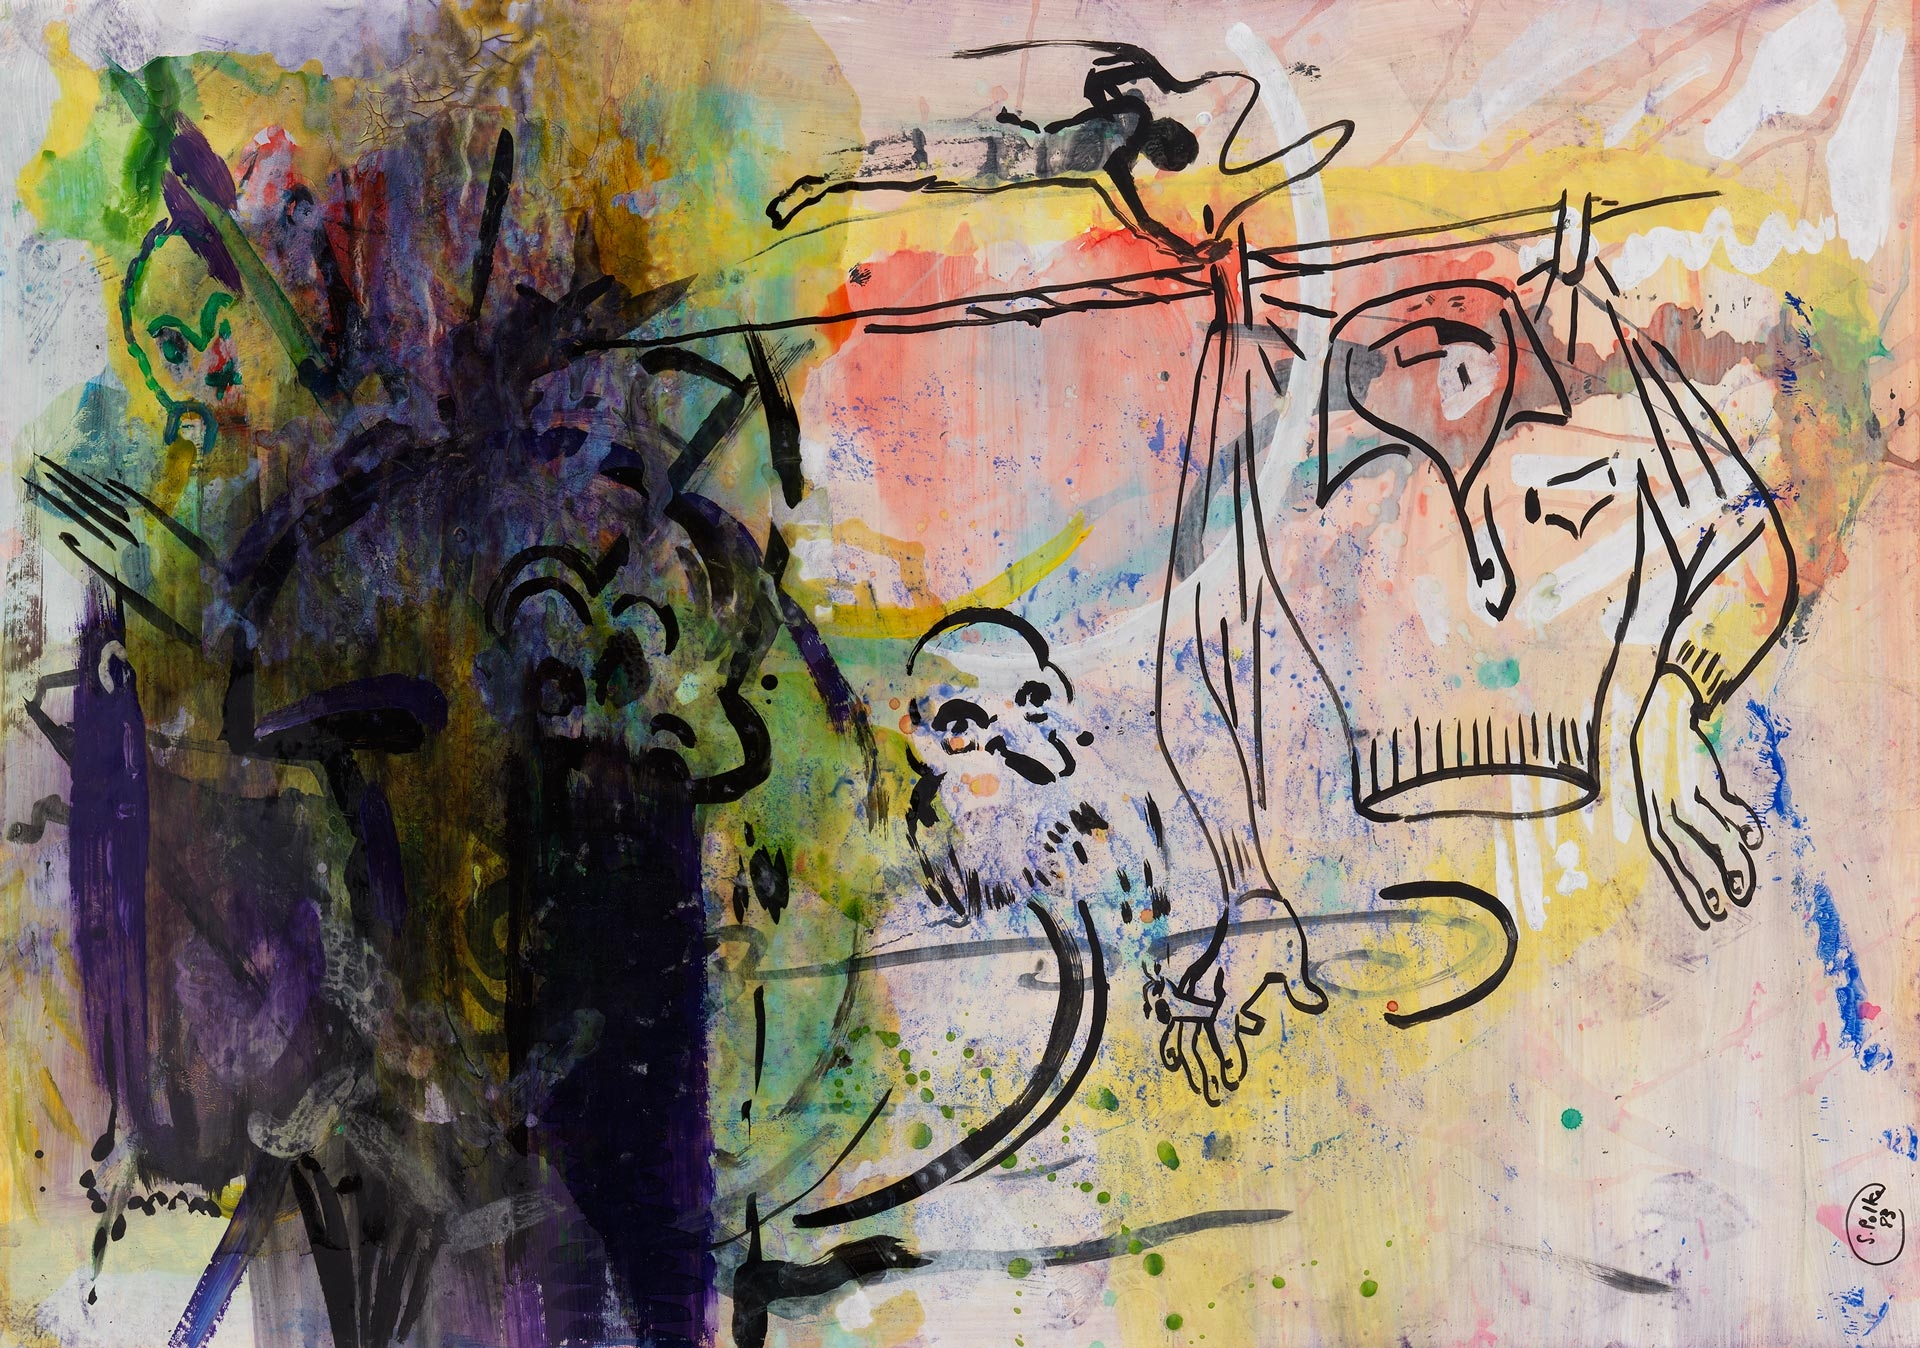 An untitled painting by Sigmar Polke, dated 1983.